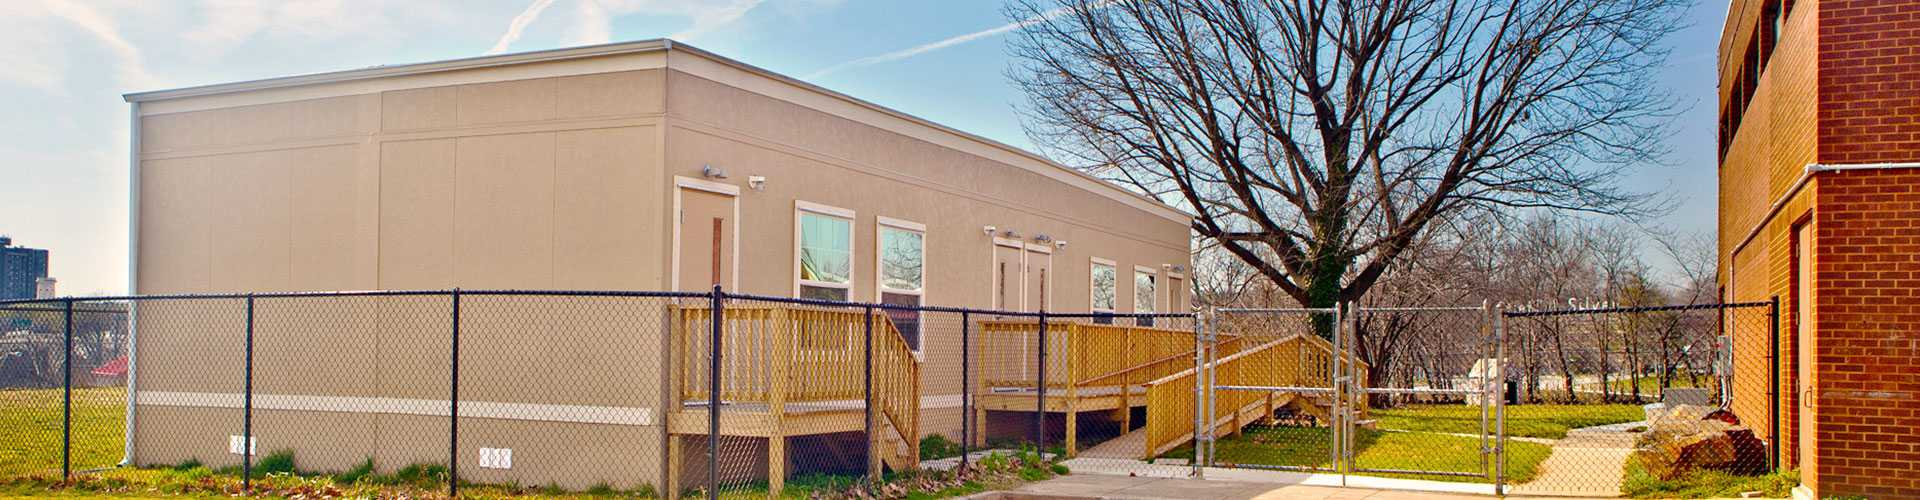 Modular Classroom Rental : Portable classroom buildings for rent or sale in north